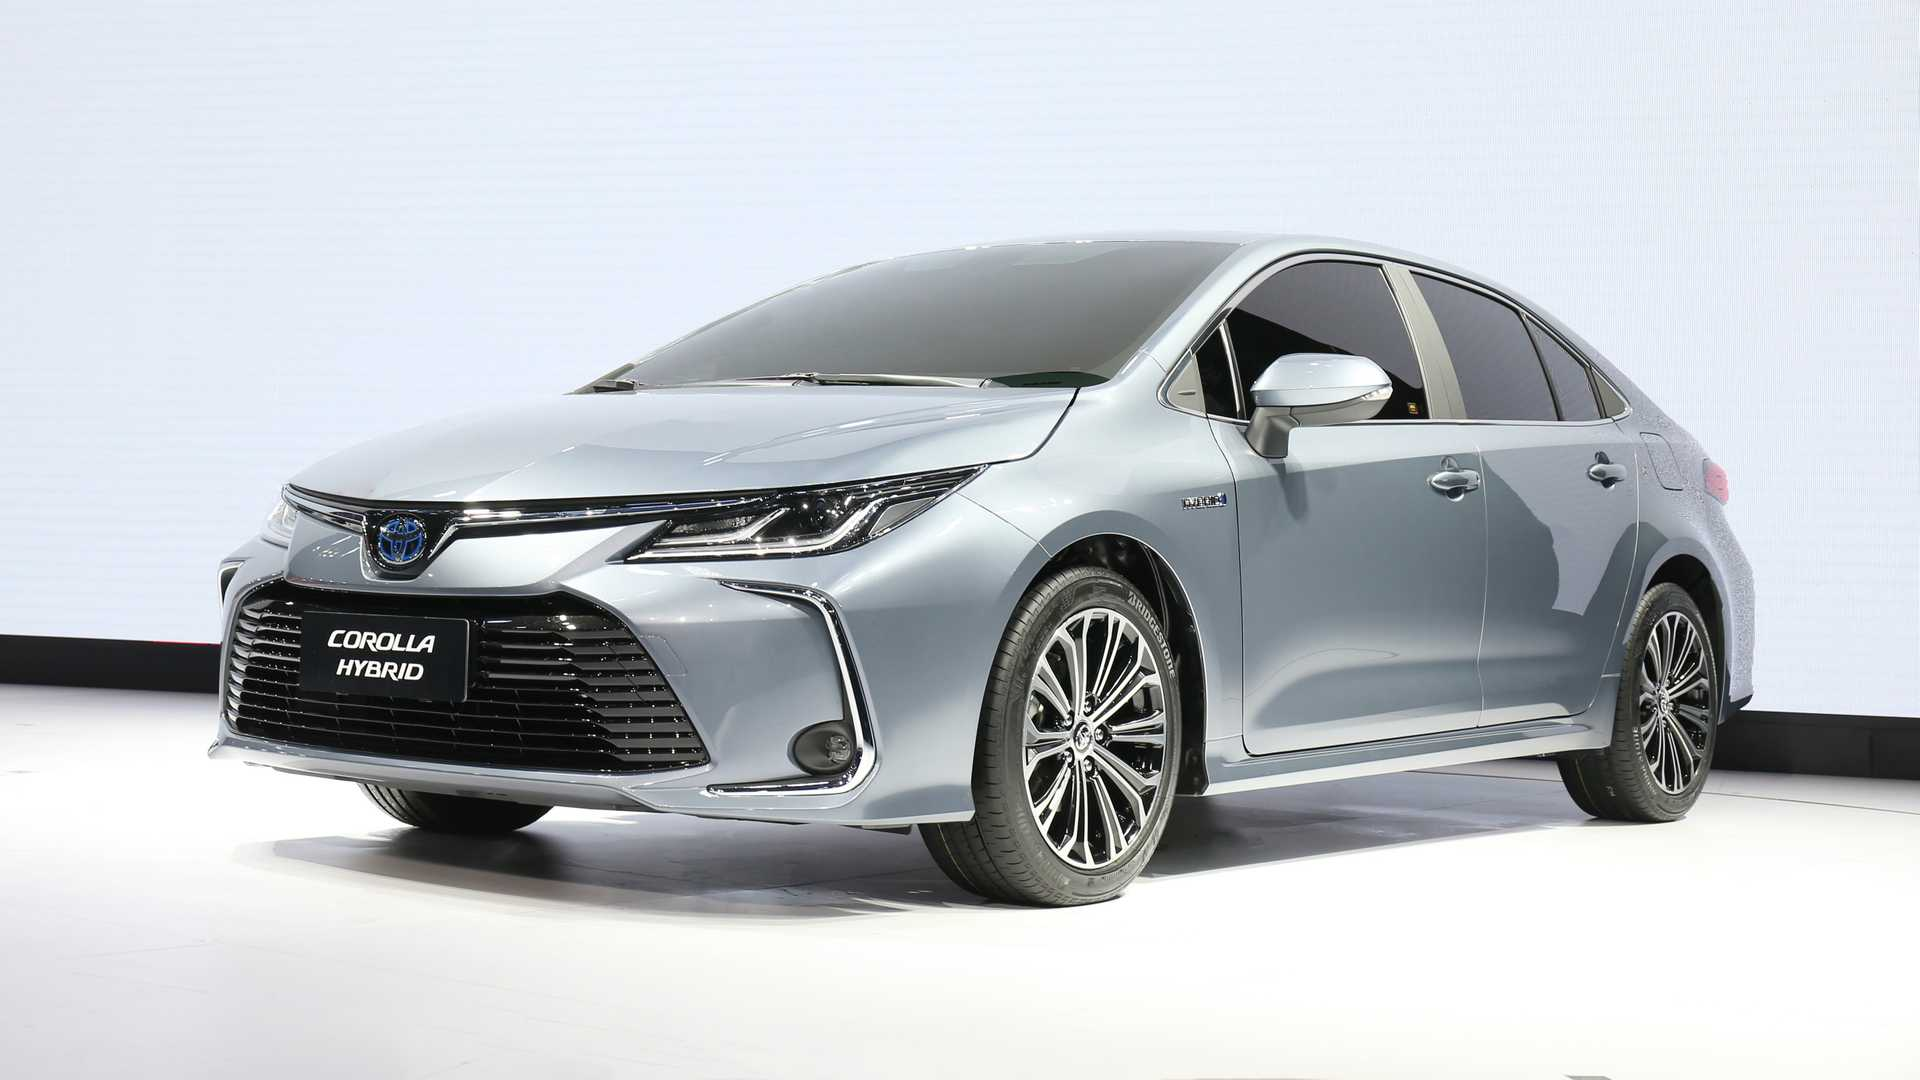 85 The Toyota Avensis 2020 Price And Release Date